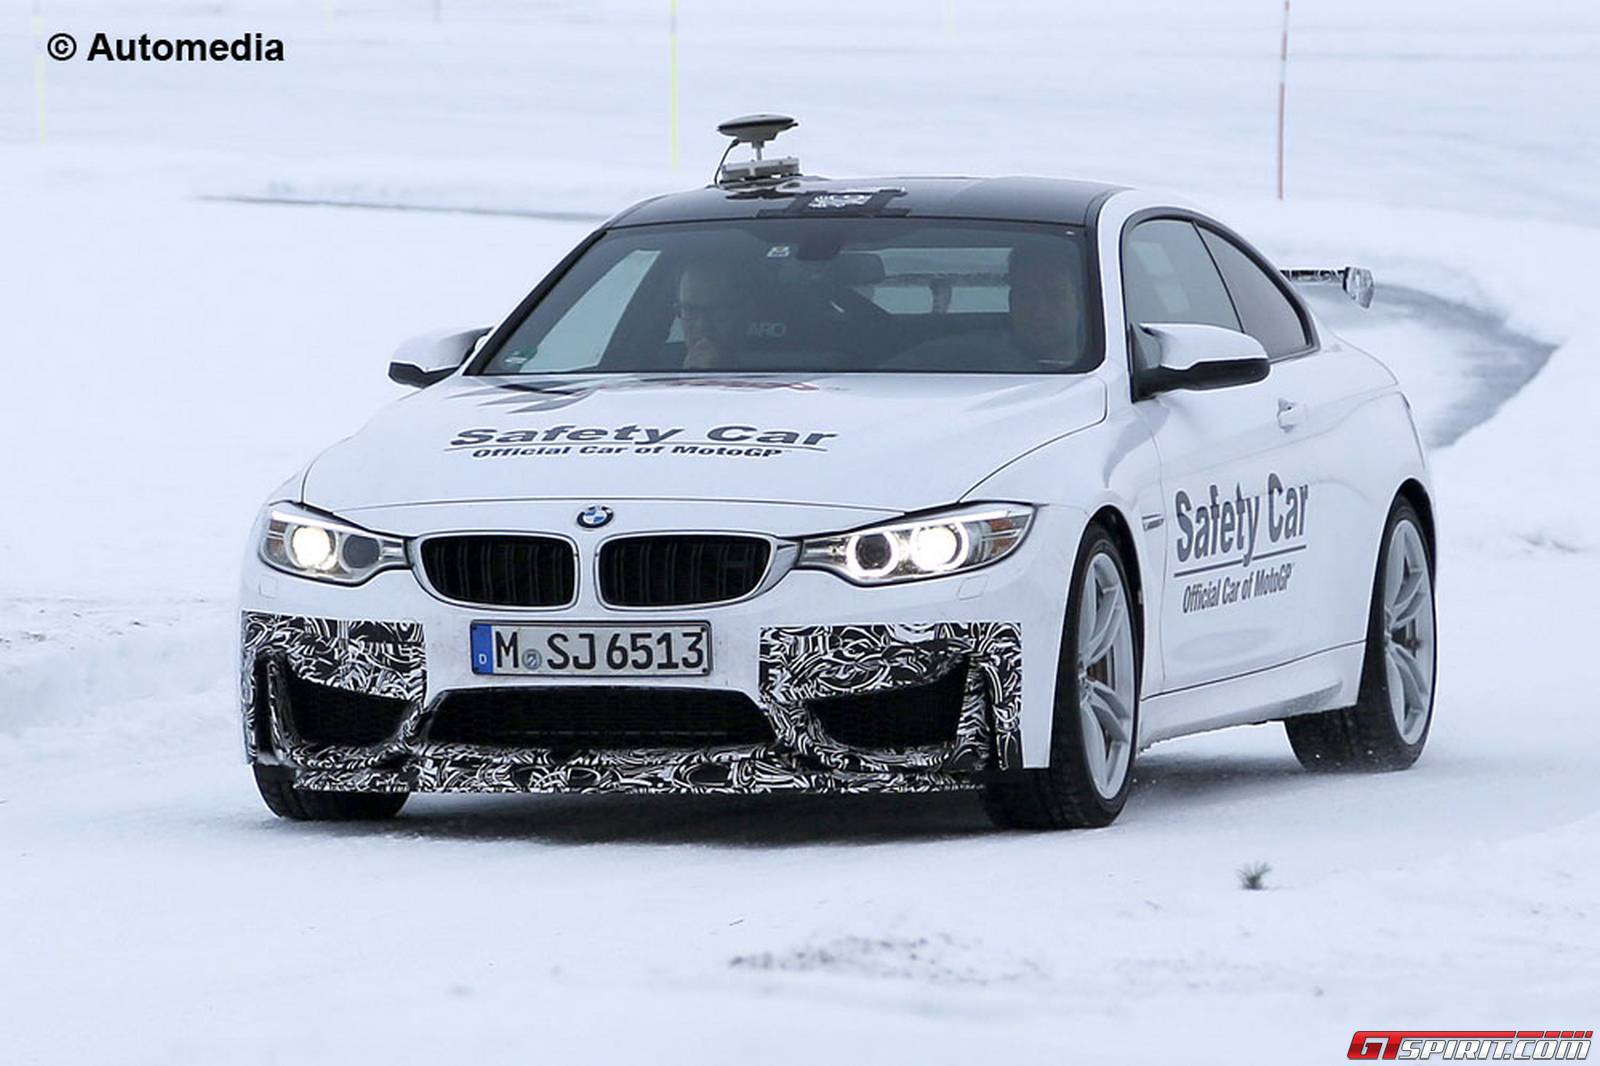 2016 BMW M4 GTS prototype spotted during tests